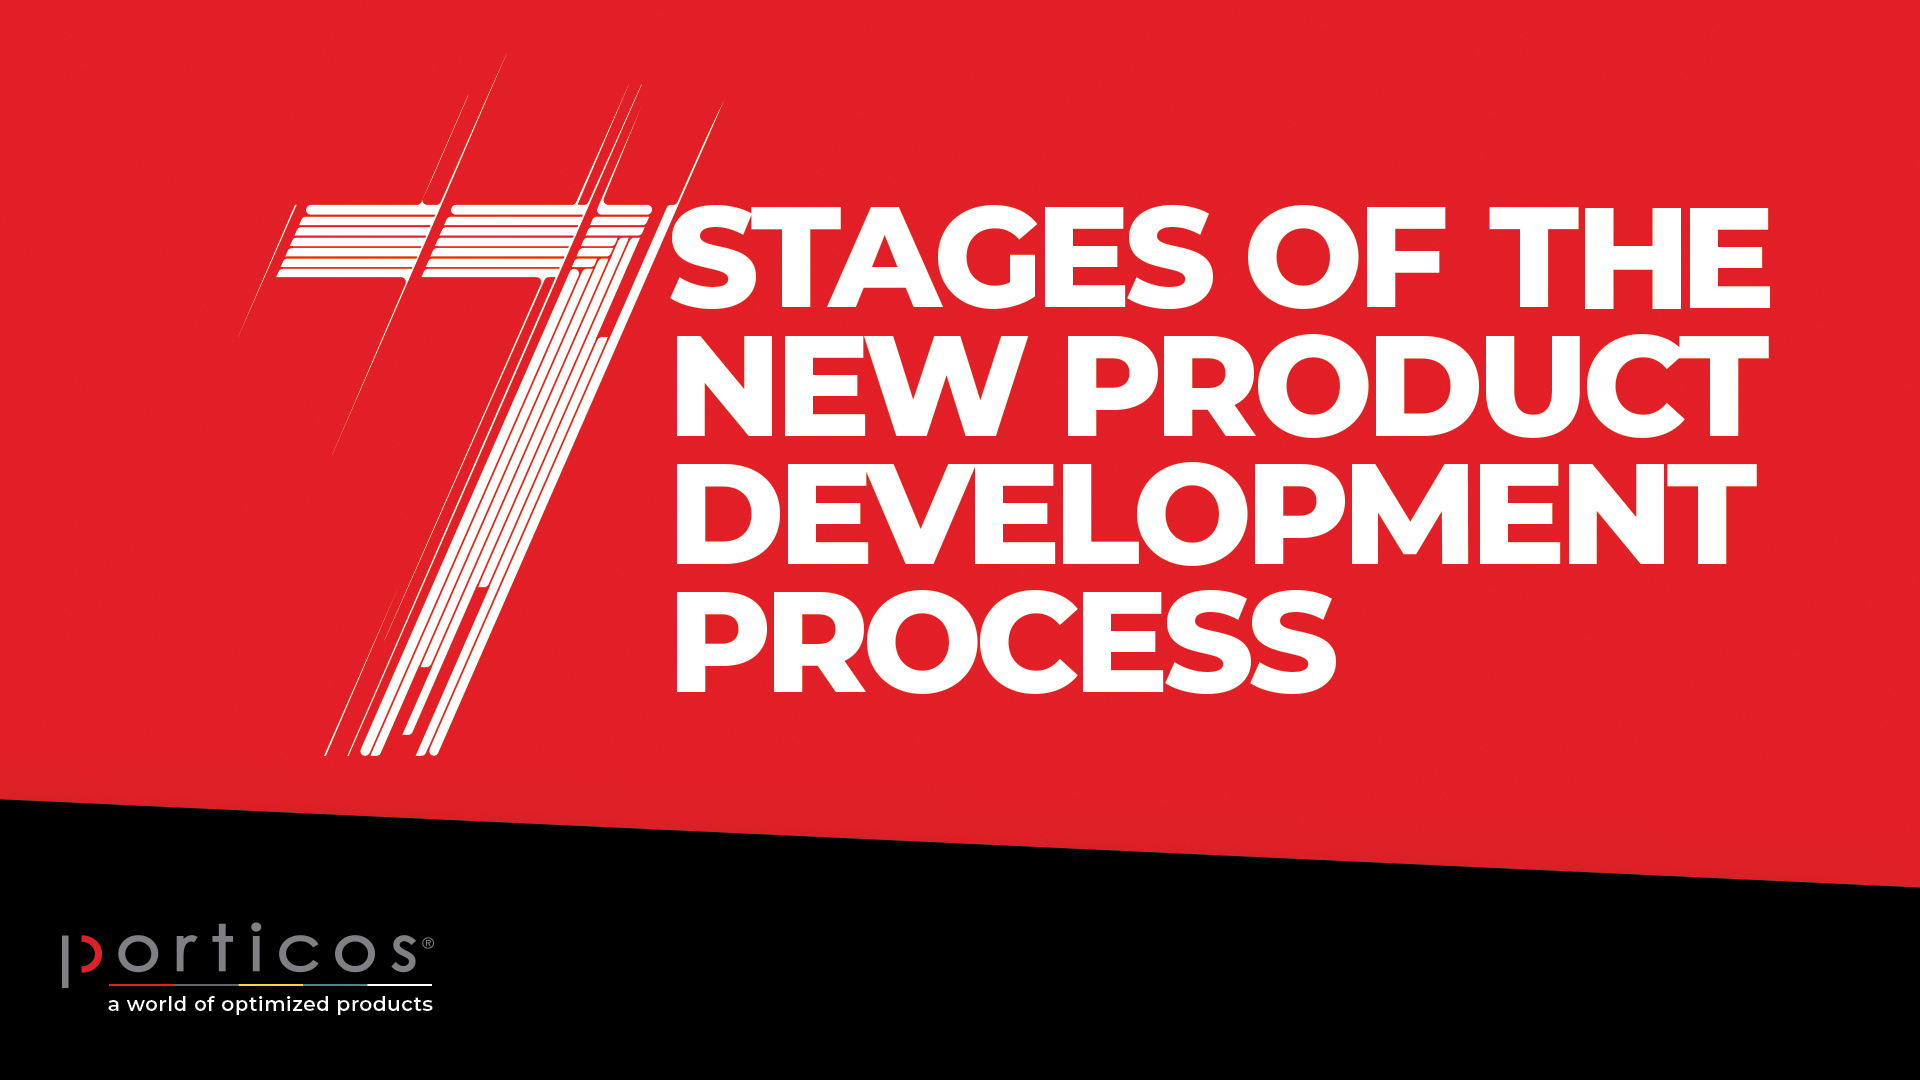 7 Stages of The New Product Development Process | Porticos